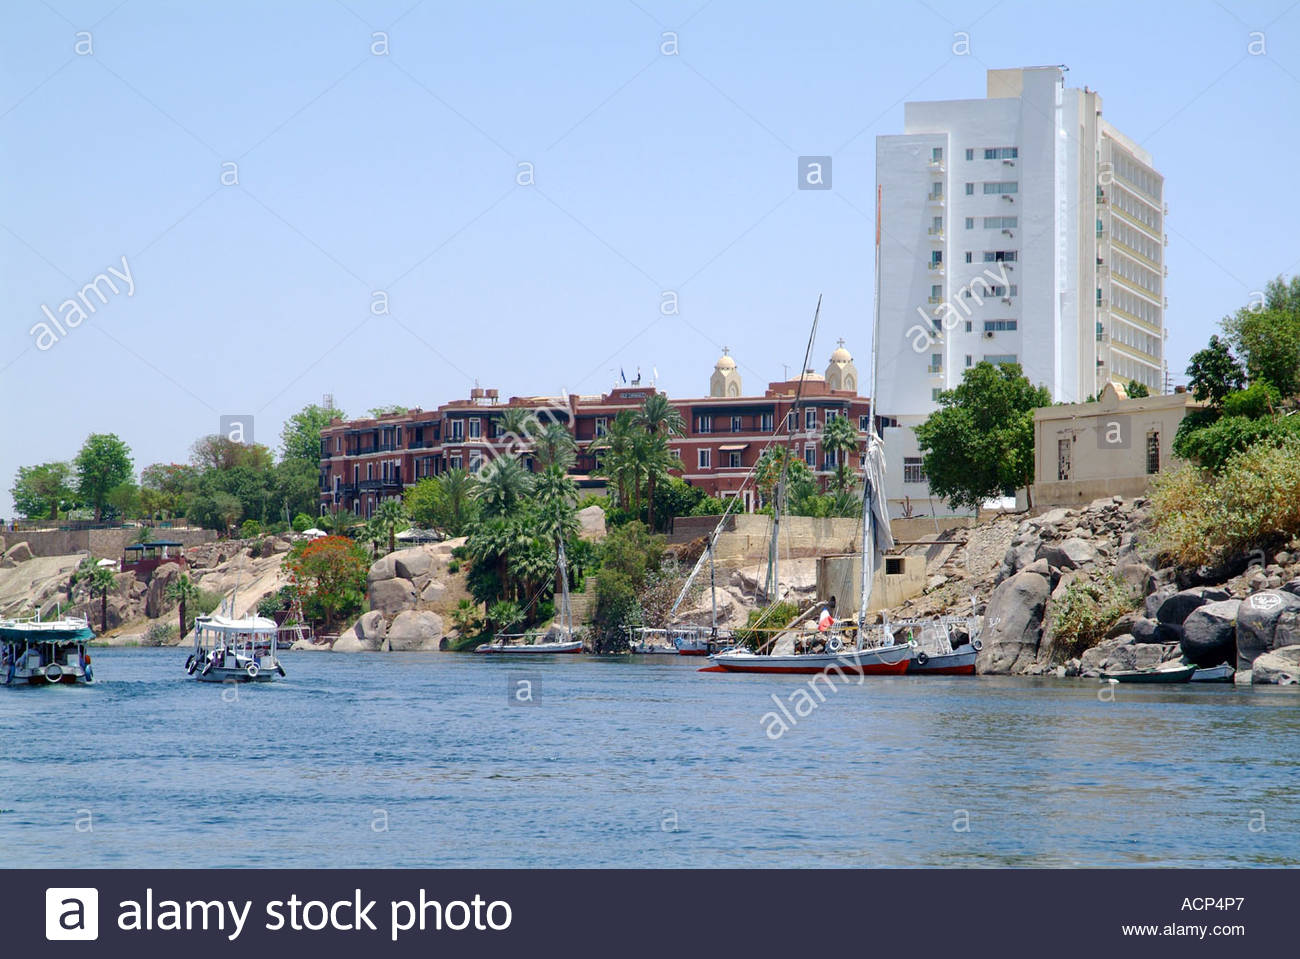 The Famous Aswan Old Cataract Hotel With Its New Addition To The